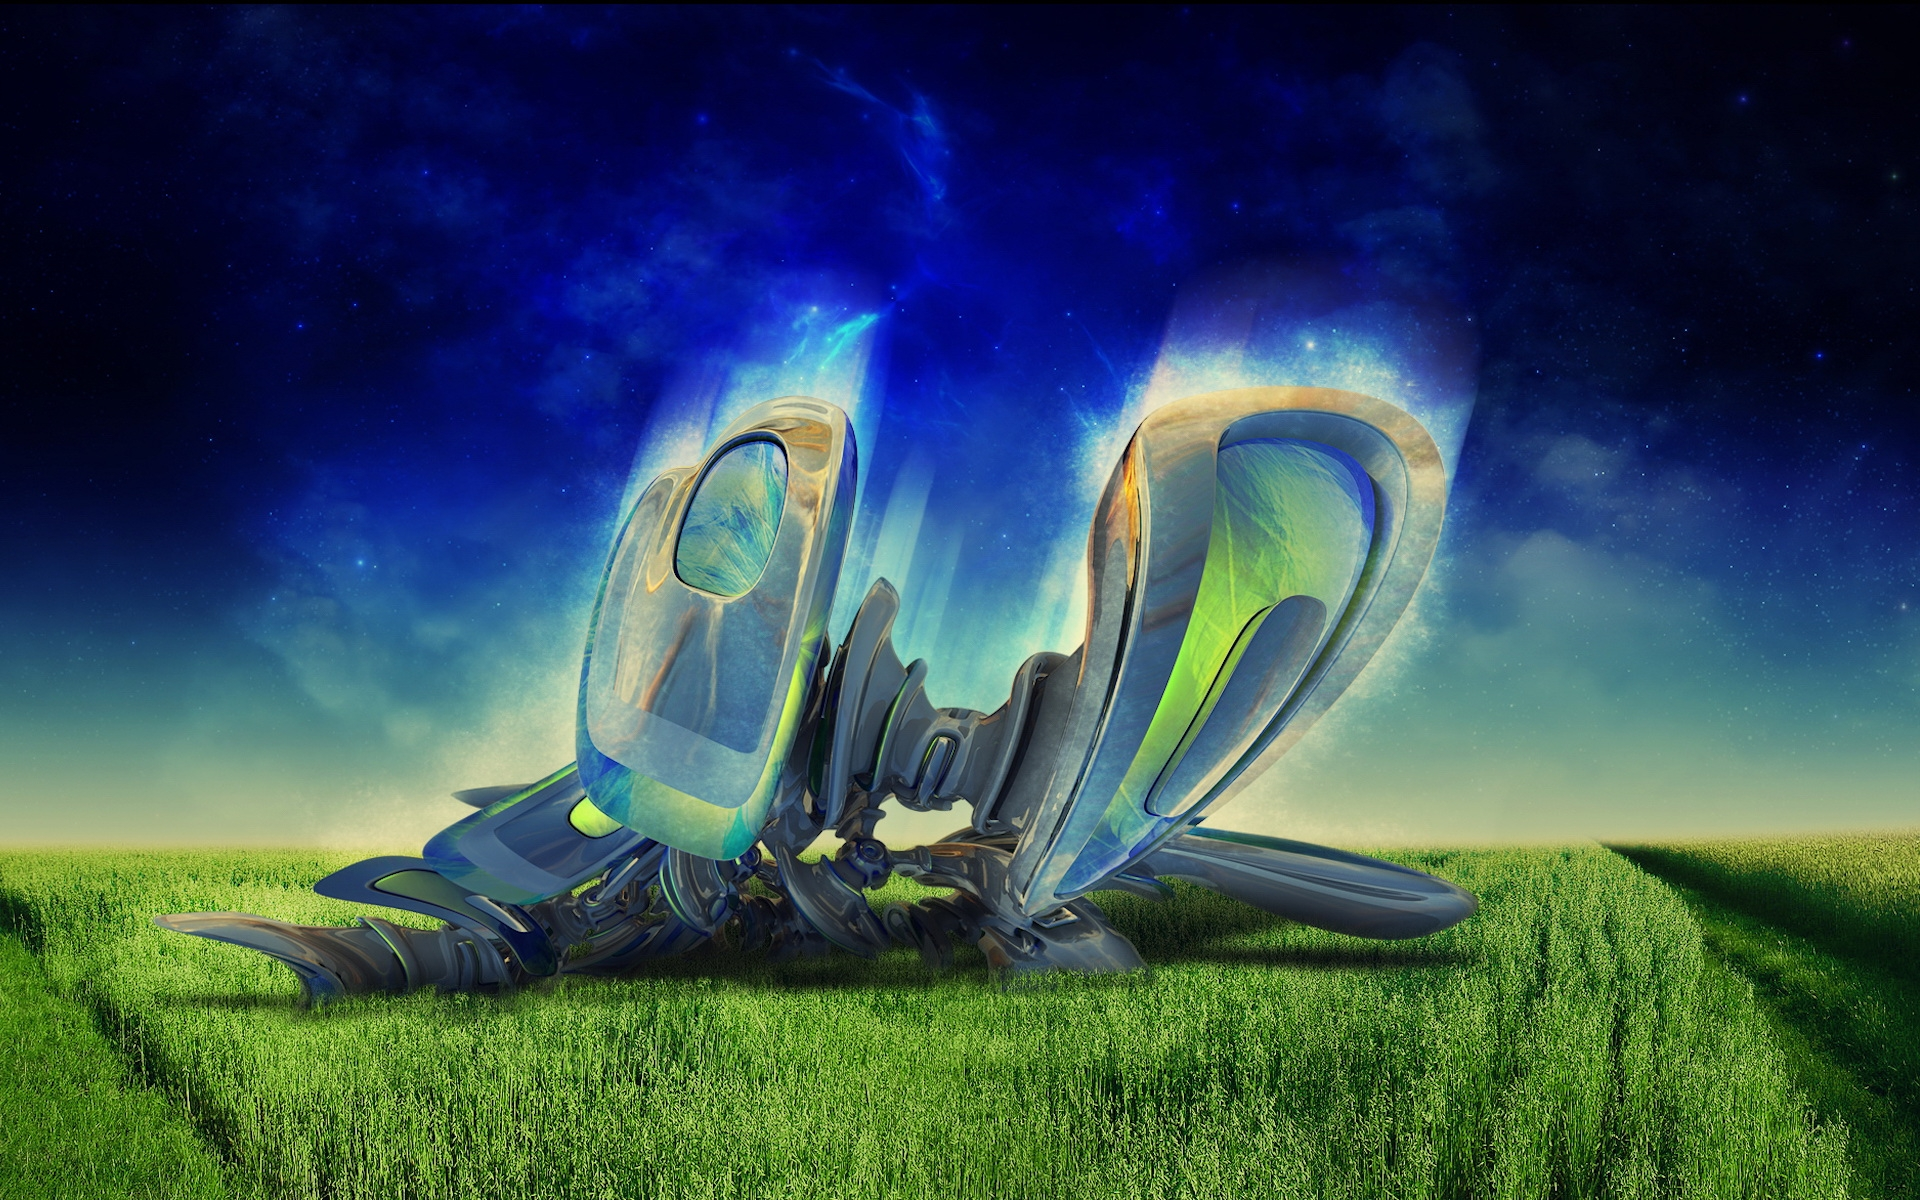 epic 3d wallpapers hd - photo #6